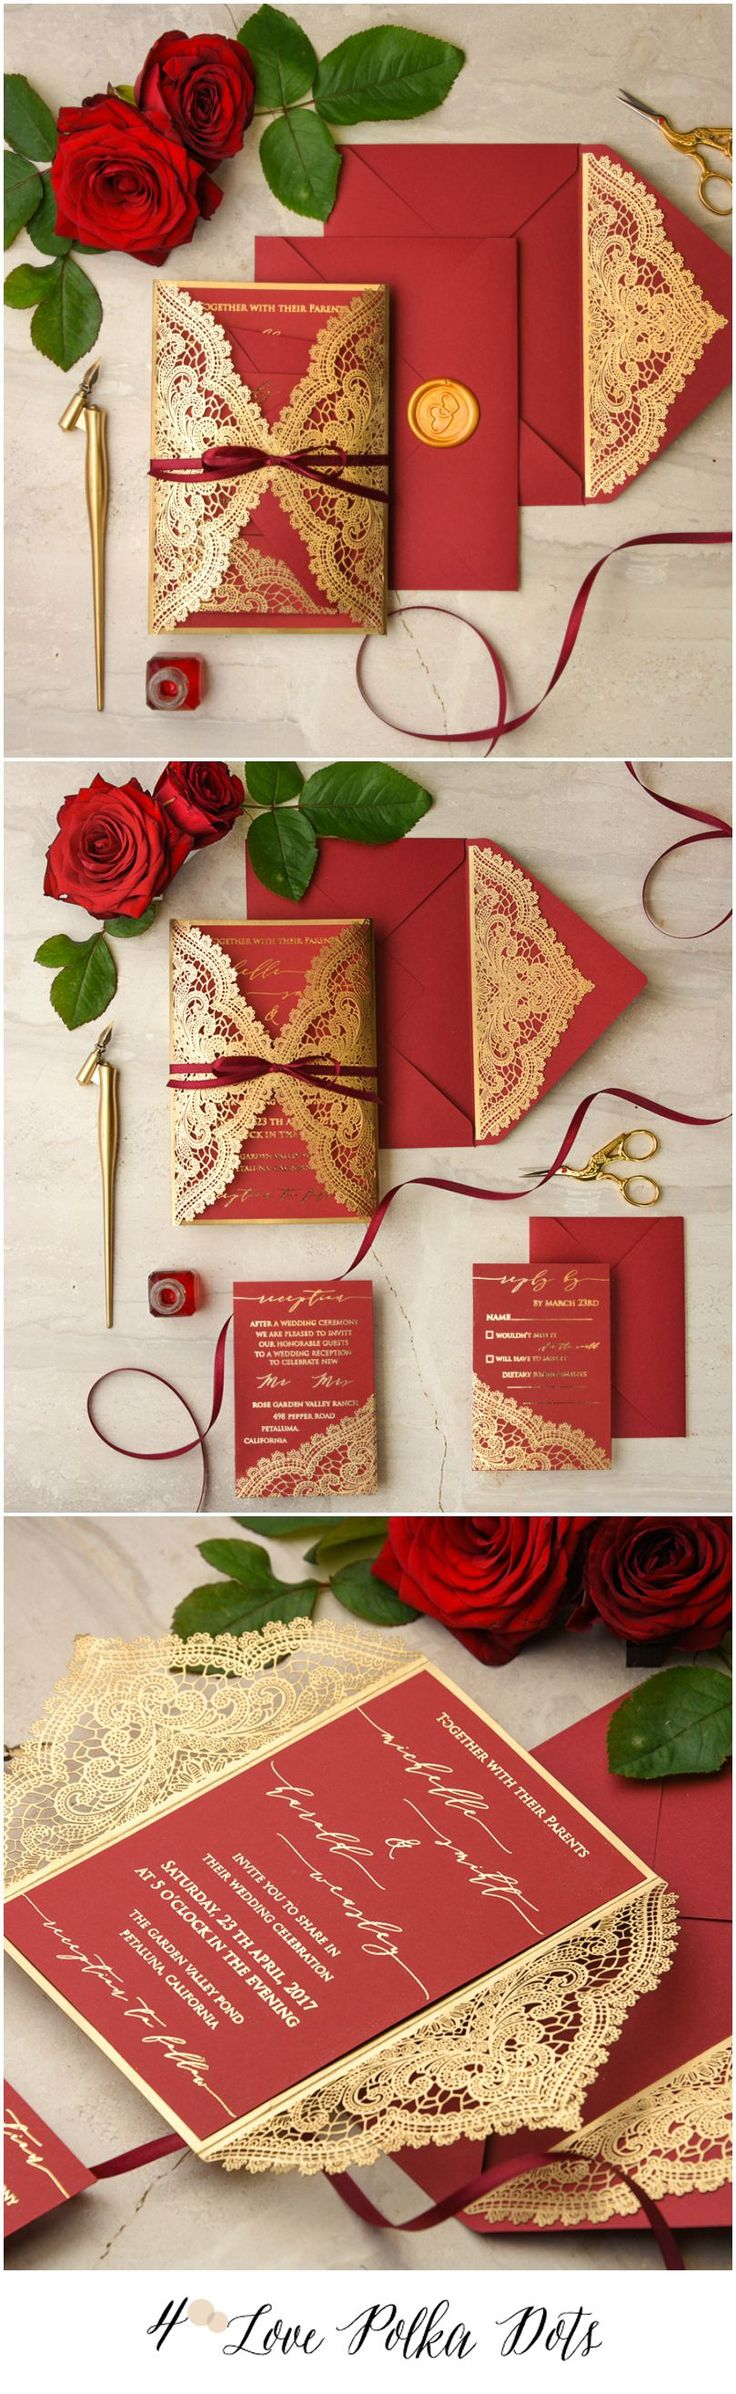 lace wedding invitation wrap%0A Red  u     Gold laser cut lace romantic wedding invitations  sponsored